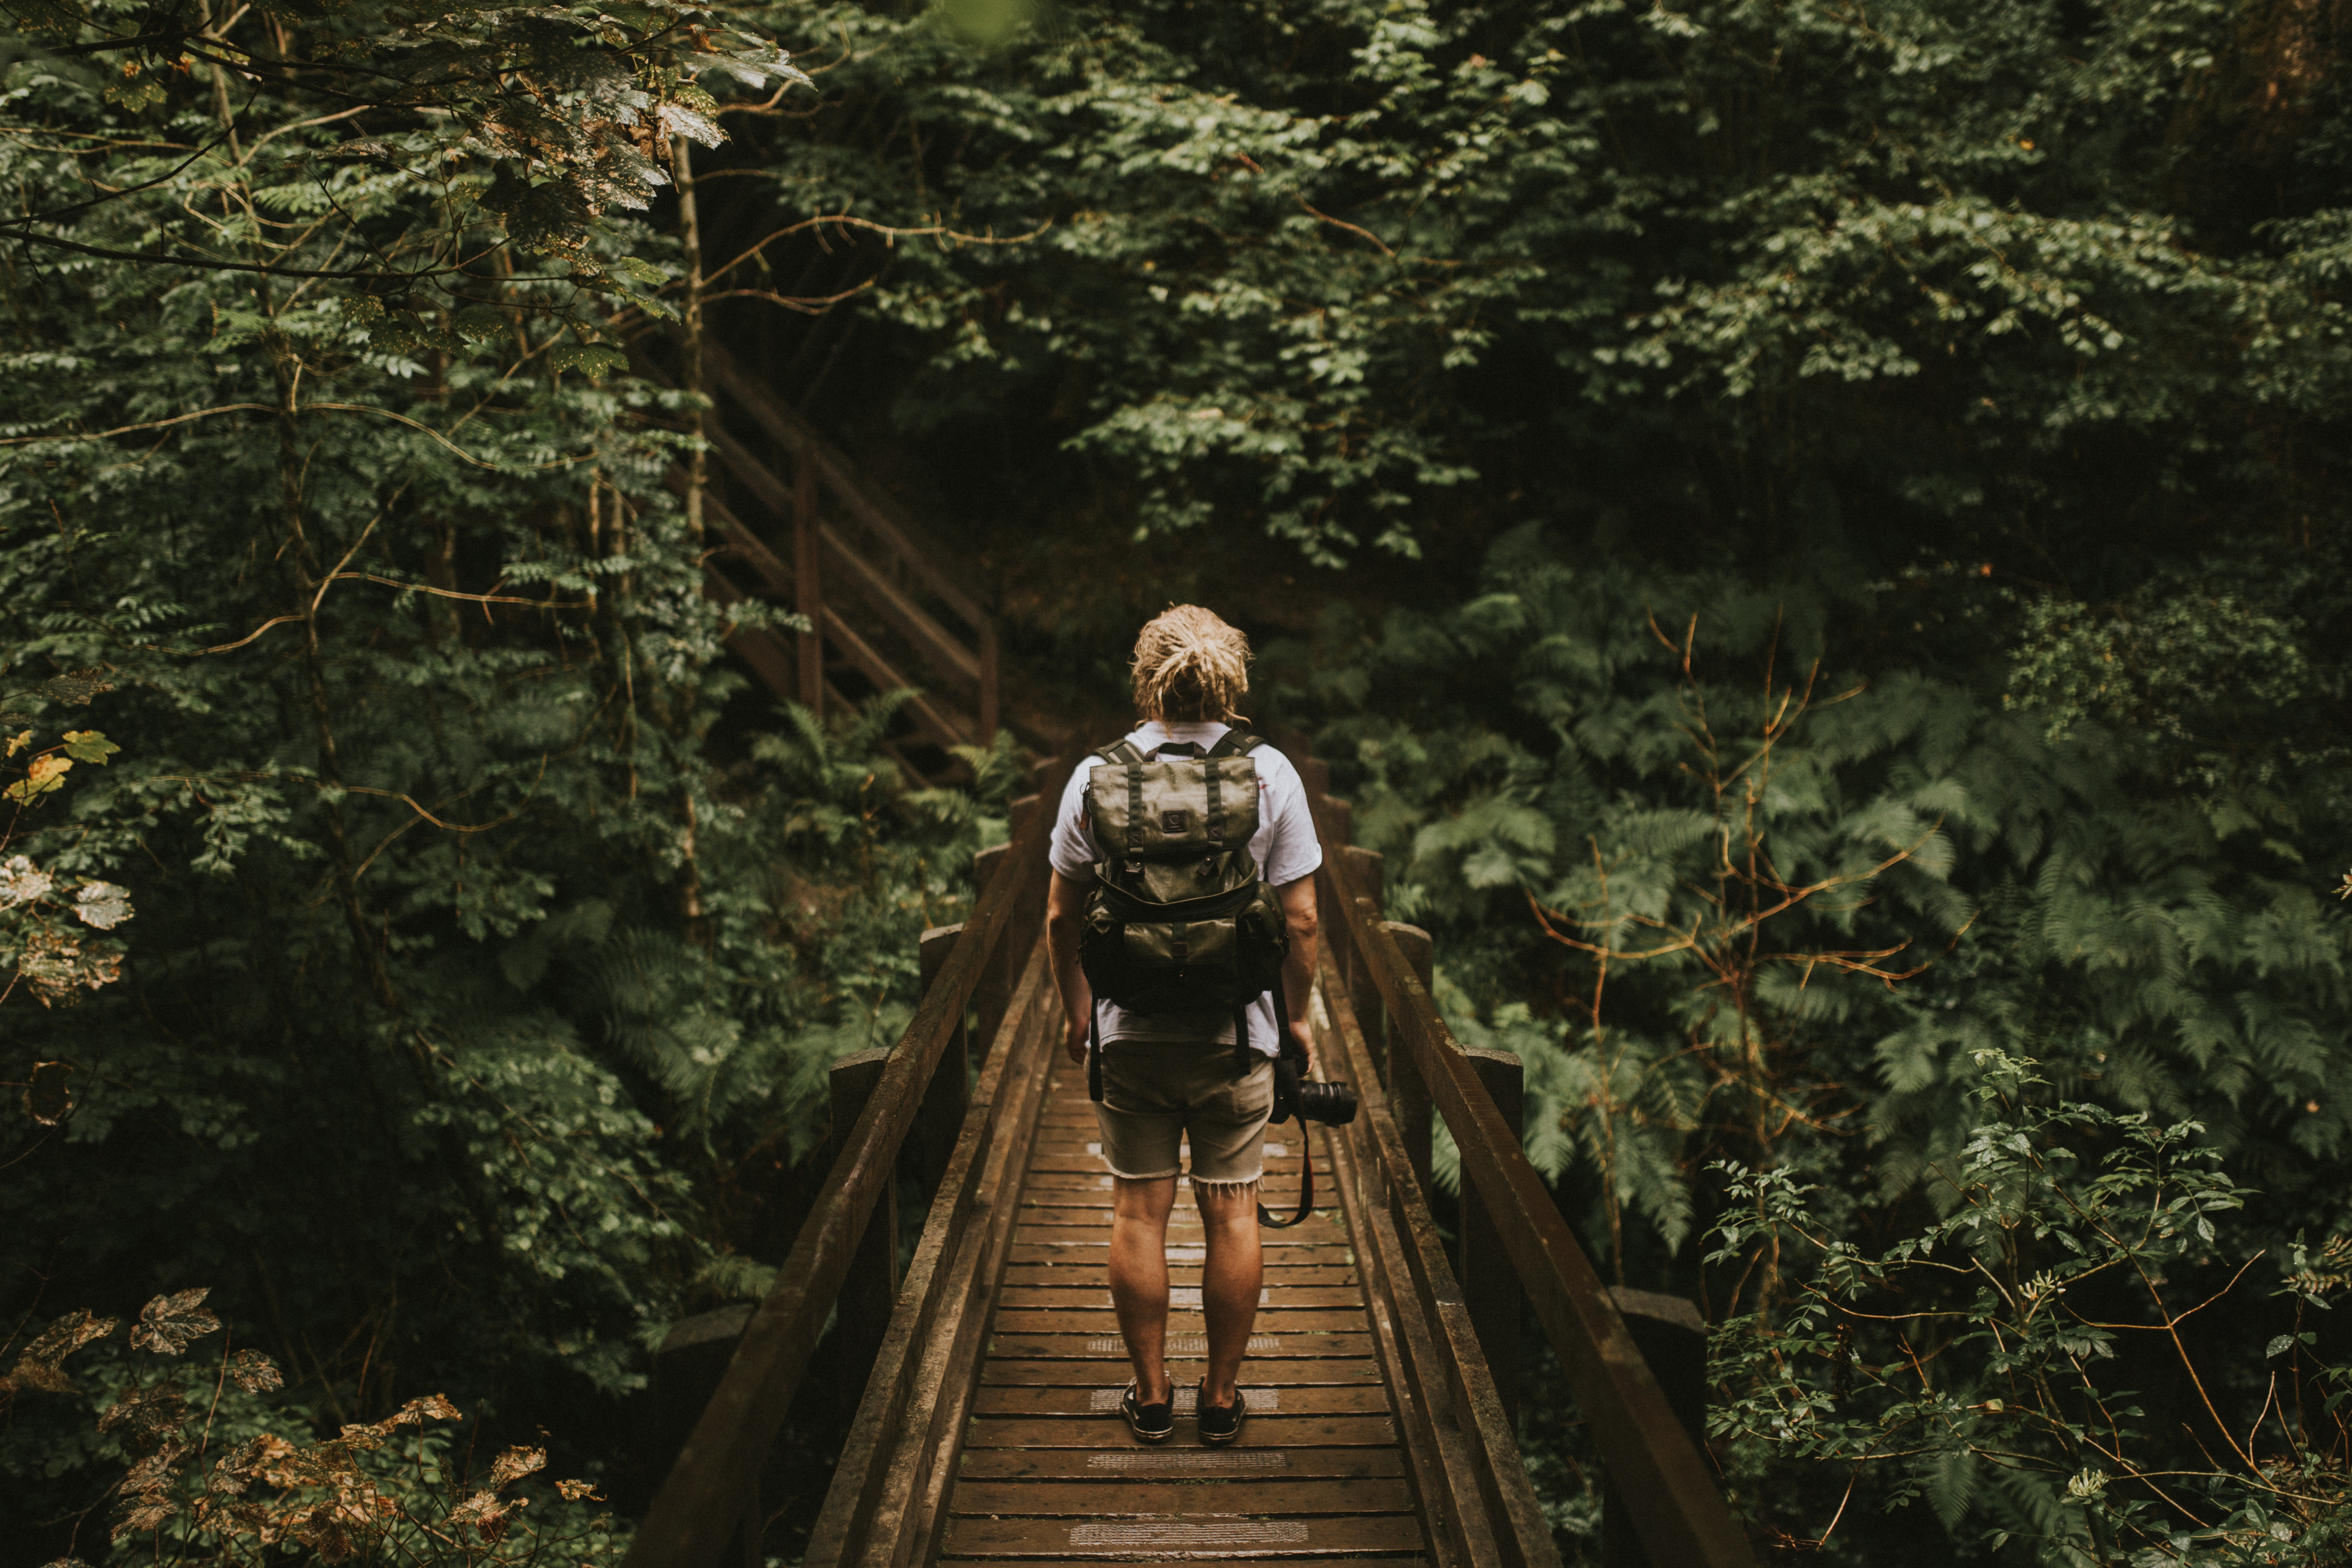 Man on bridge in forest.